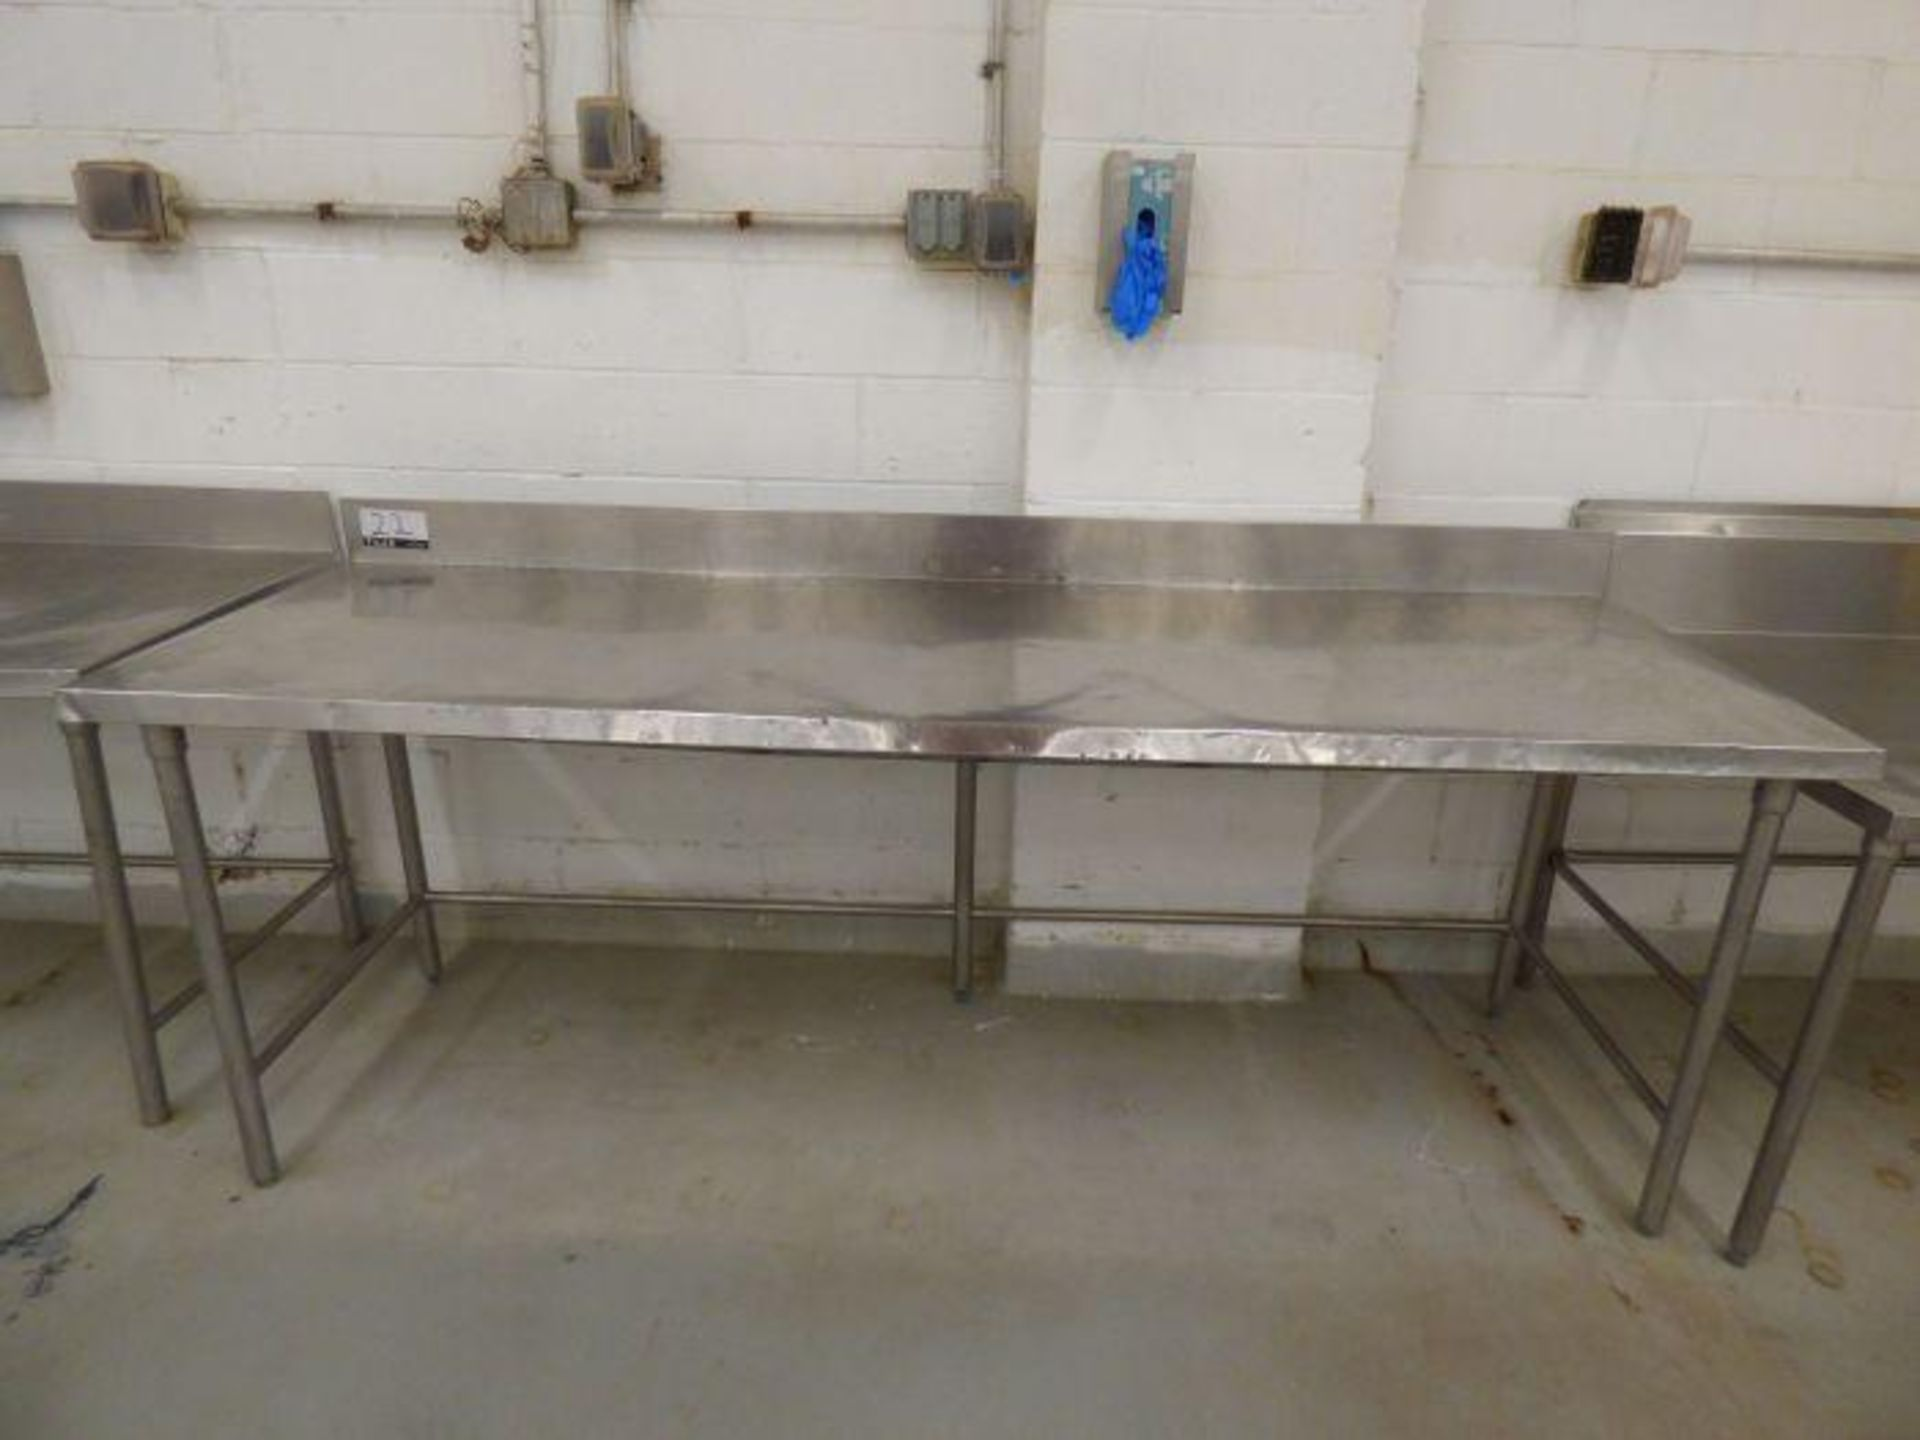 Lot 1022 - Stainless Steel Table